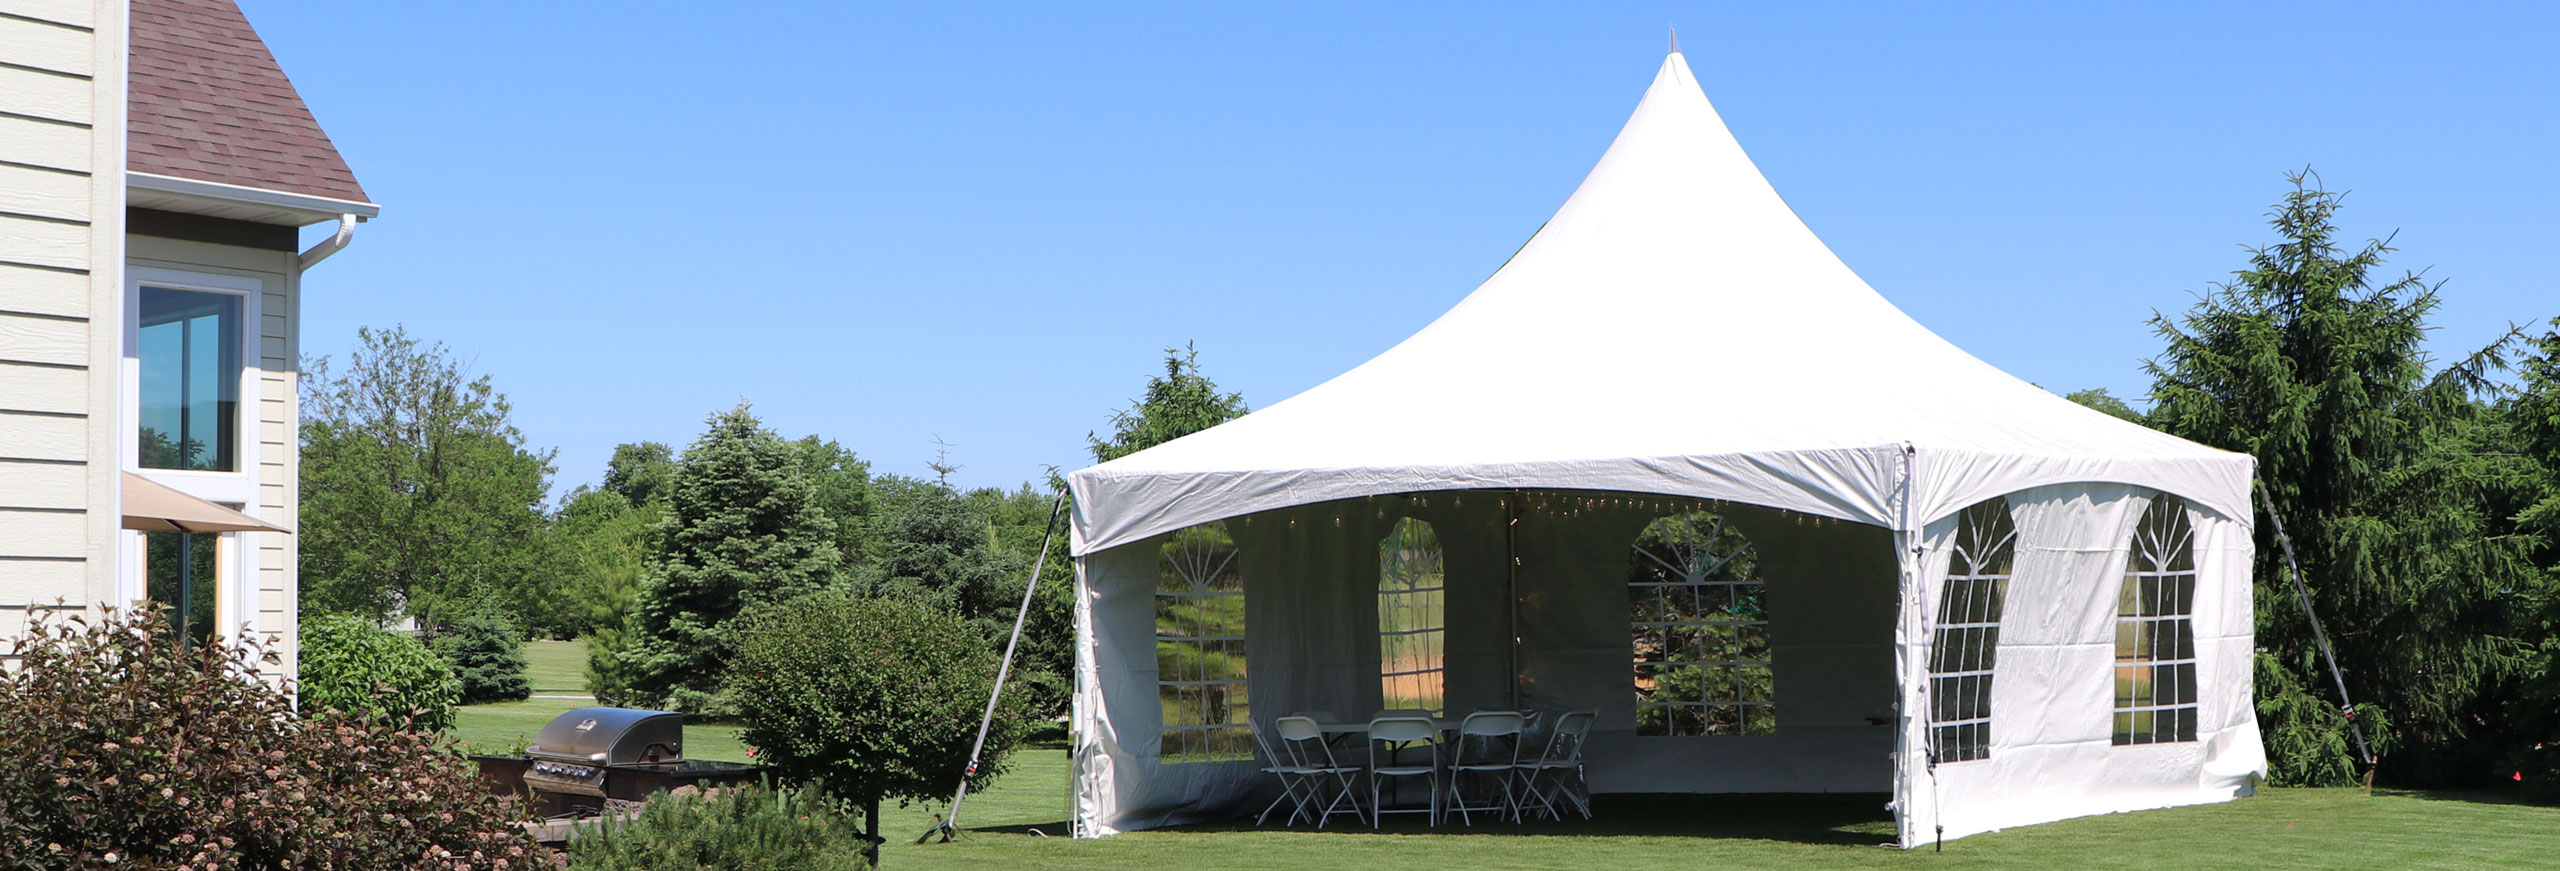 Tent in yard graduation